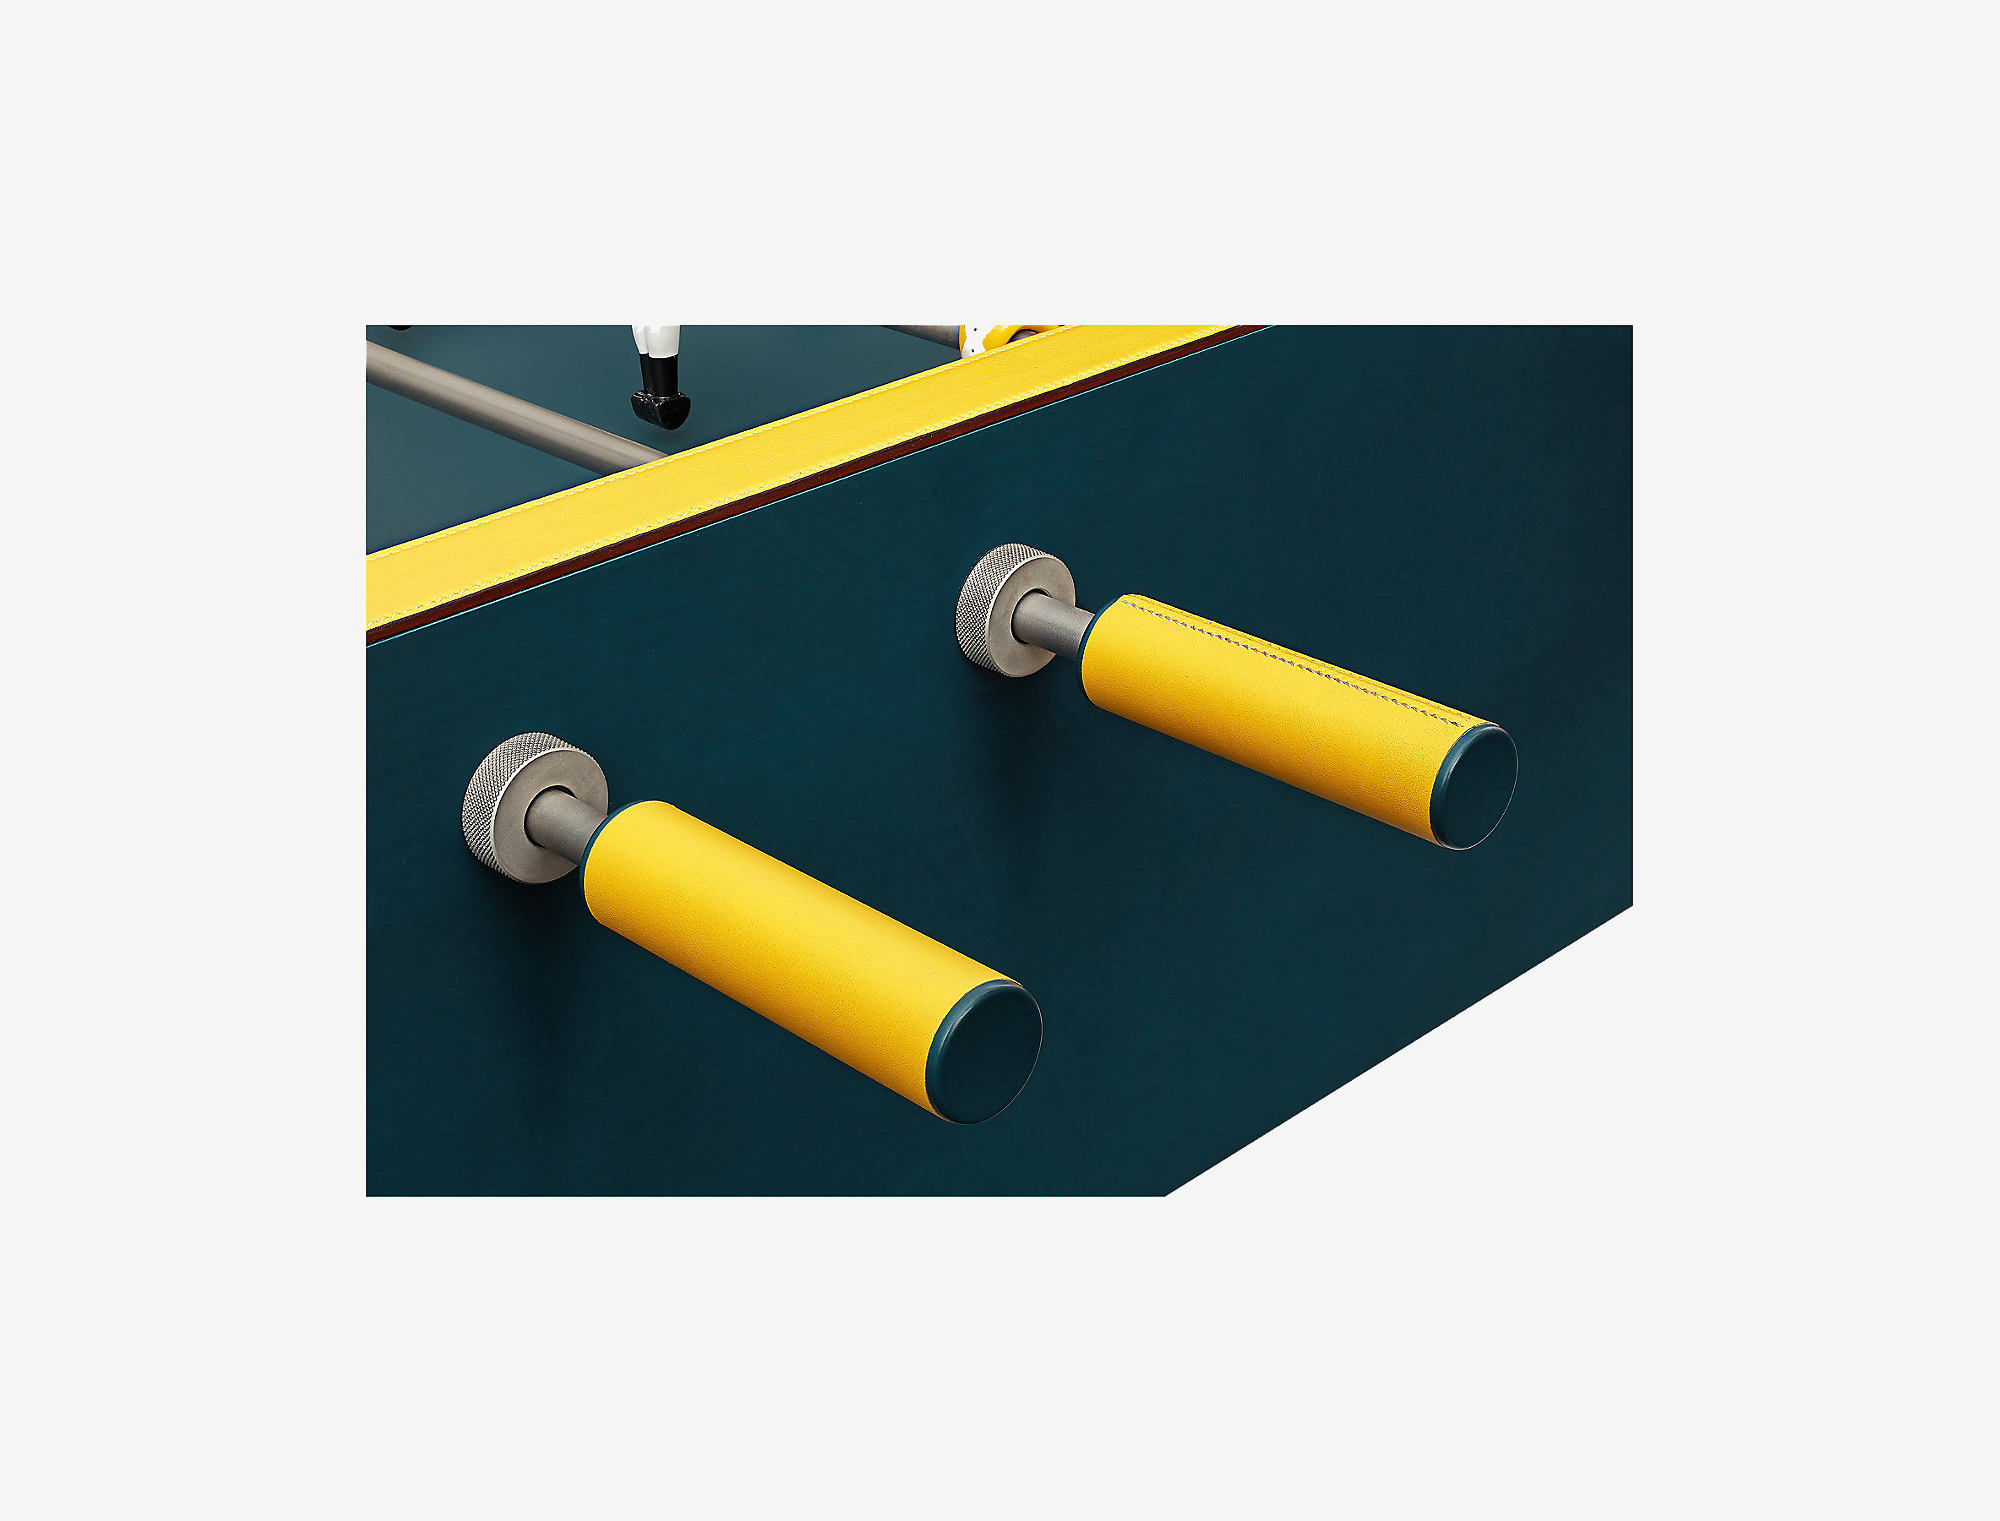 foosball-table--5030227 00-front-6-300-0-1521-1521